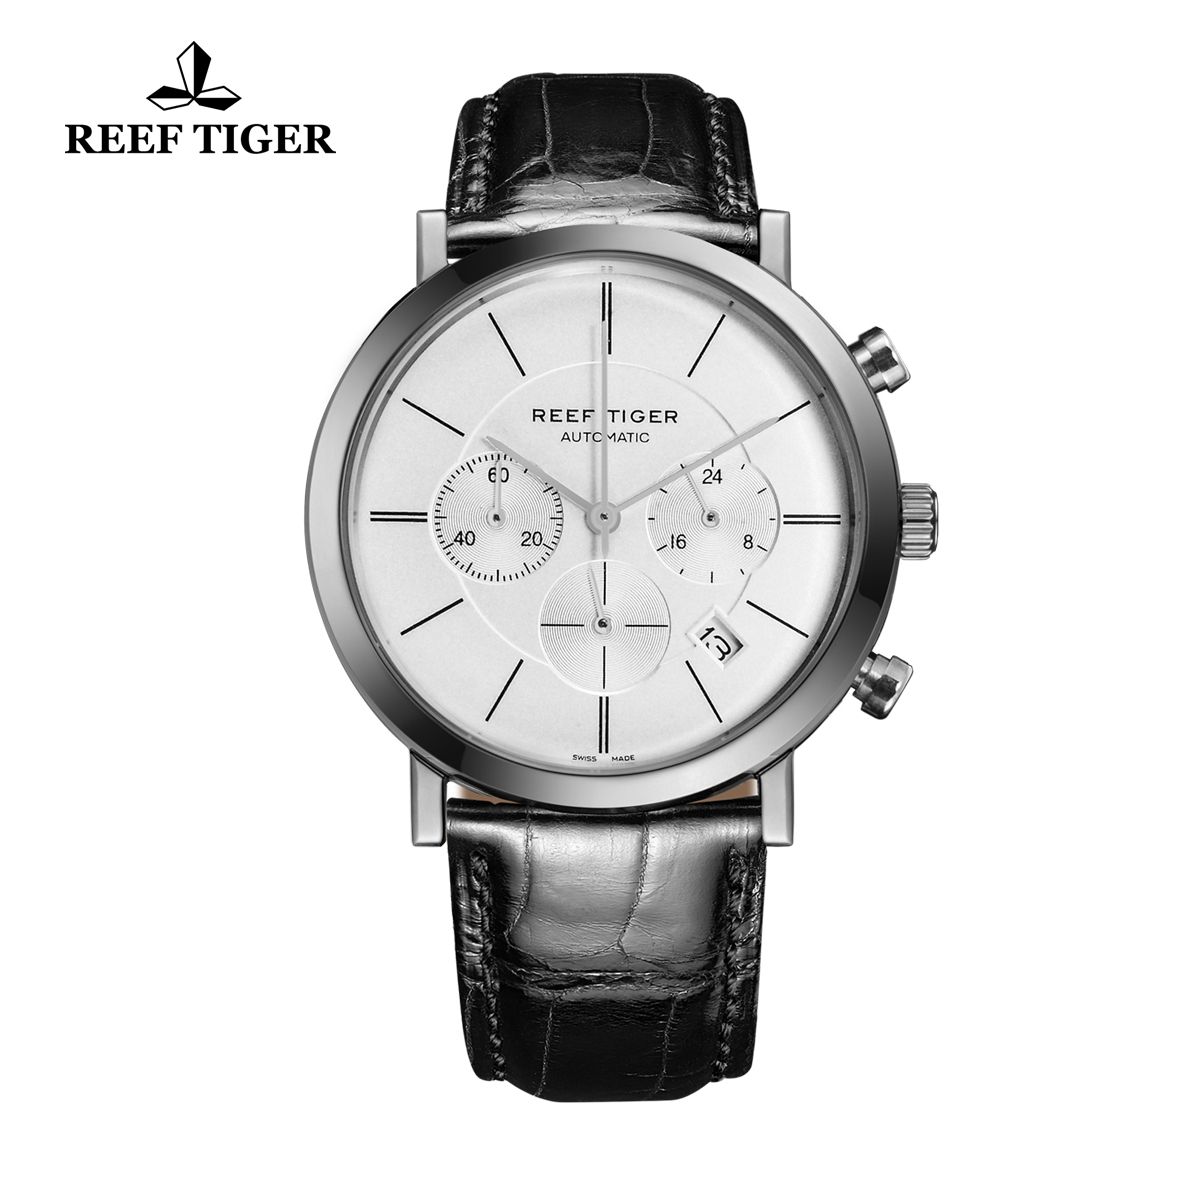 Reef Tiger Business Watch Ultra Thin Stainless Steel White Dial Chronograph Quartz Watch RGA162-YWB